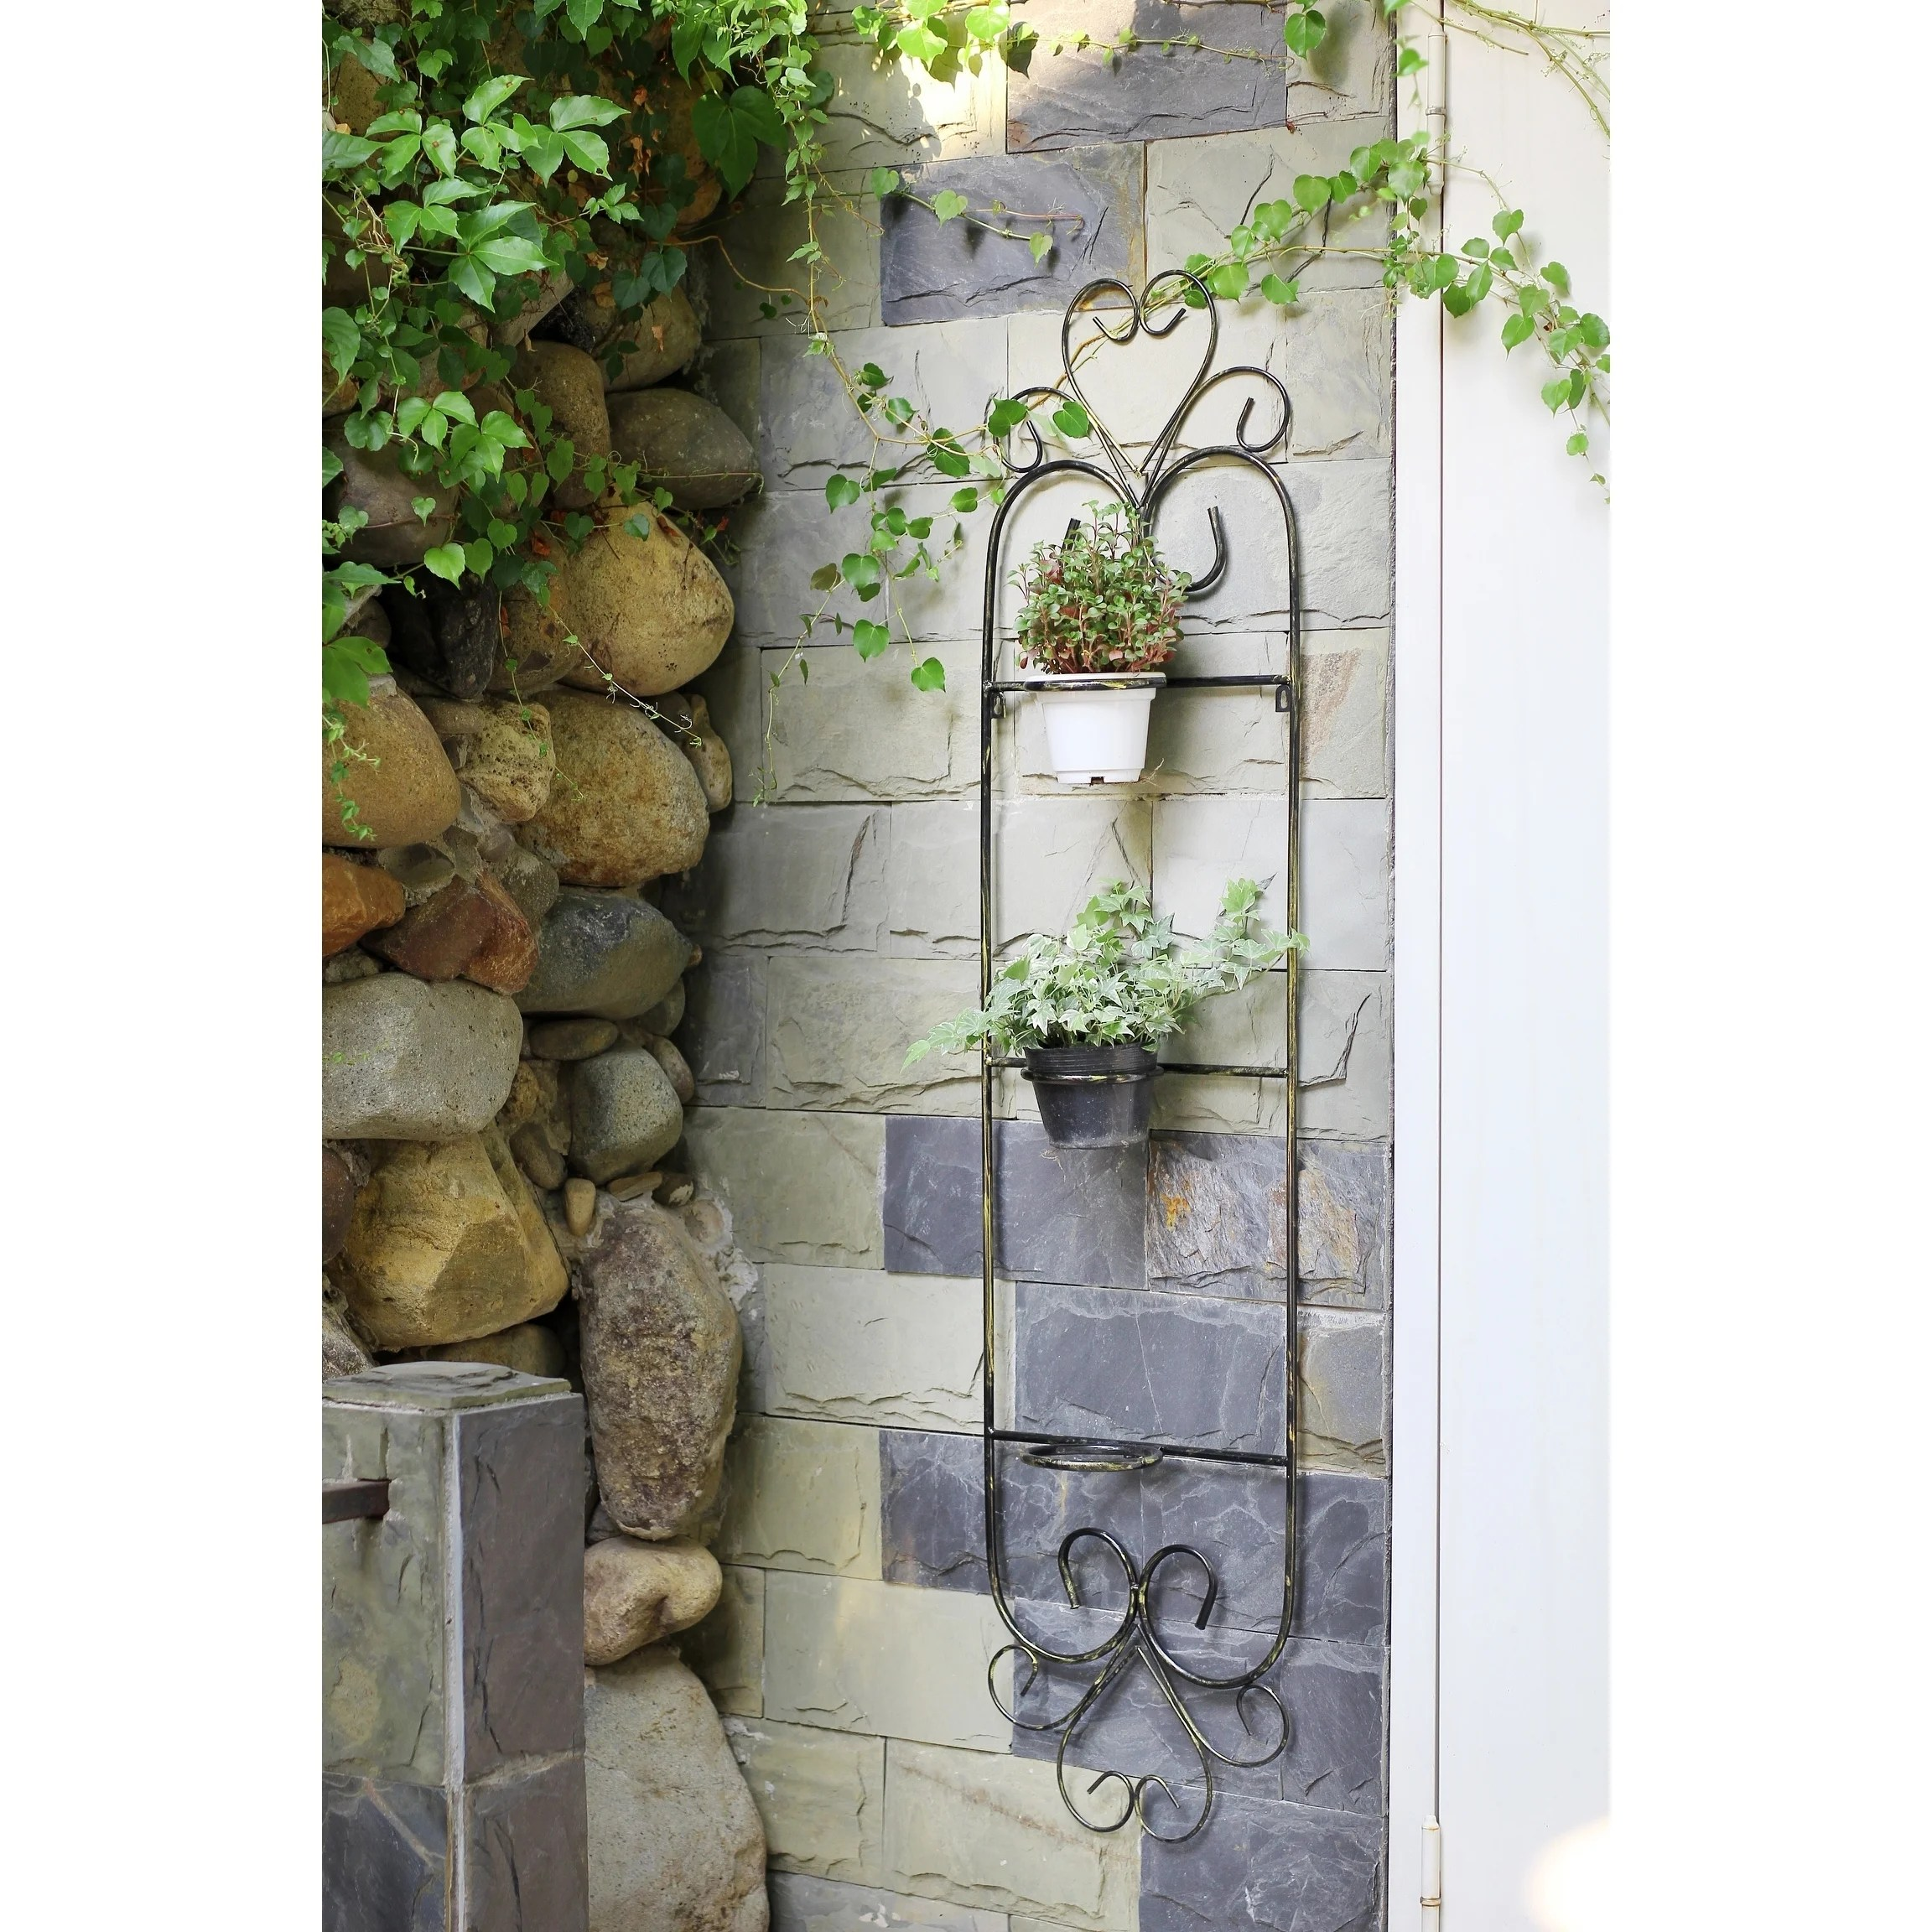 58 in. 3 Pot Plant Cast Iron Wall Planter Décor Black | eBay on Iron Wall Vases id=15762